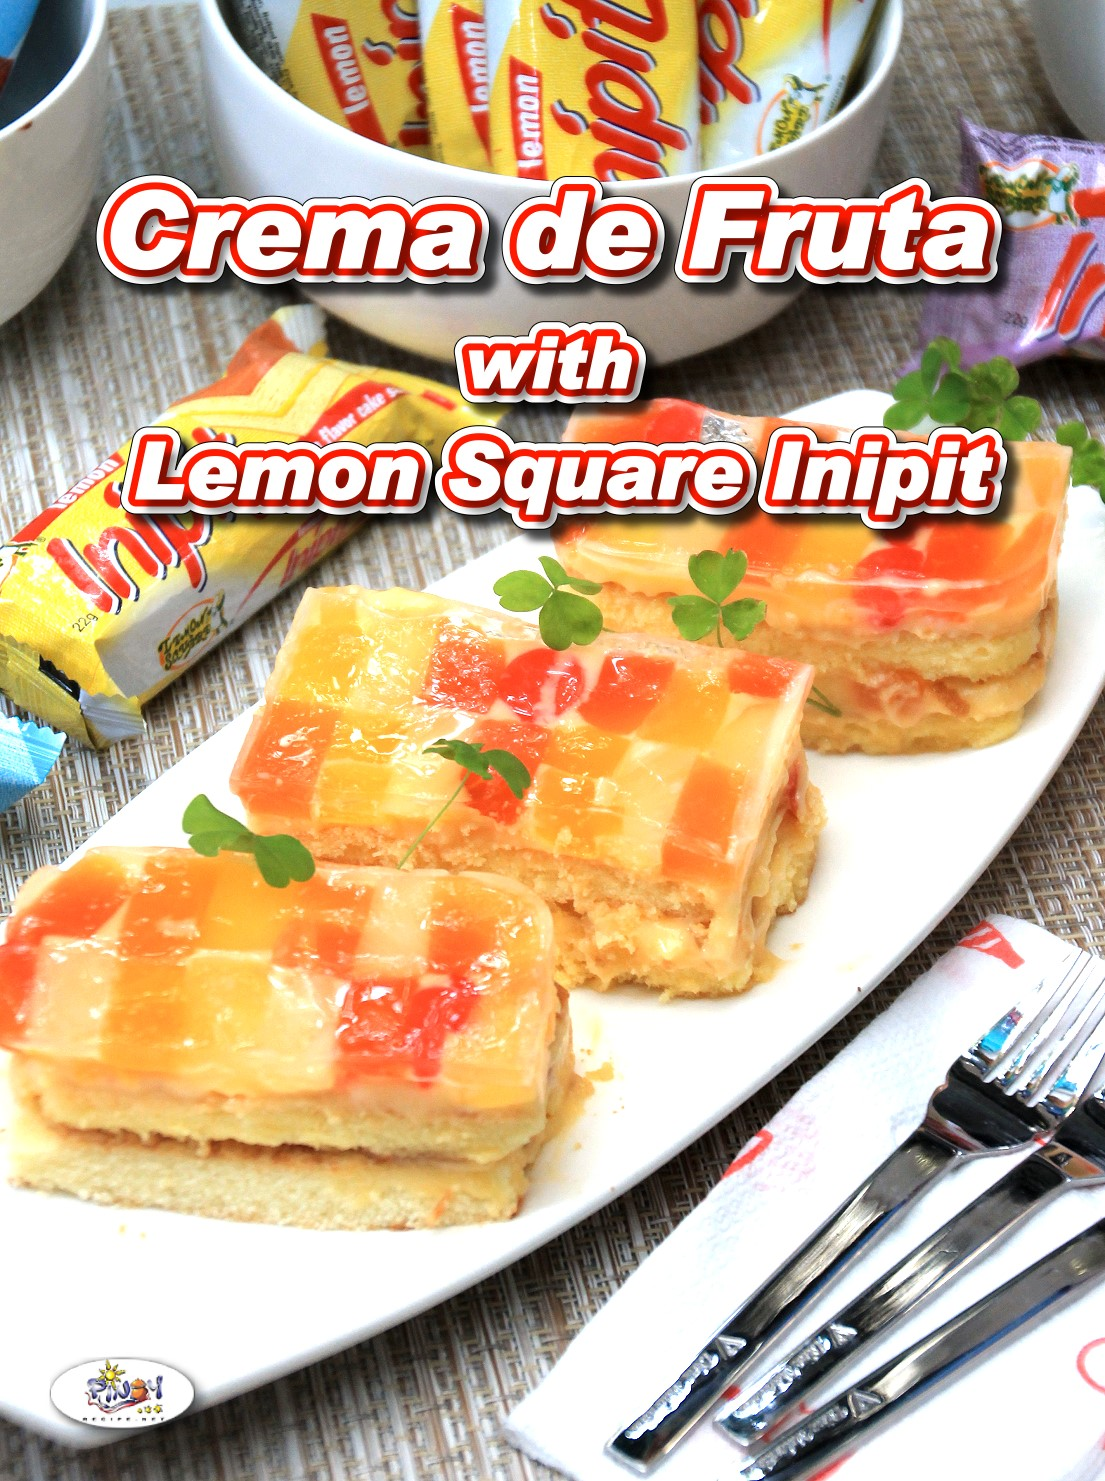 Crema de Fruta Lemon Square Inipit Recipe